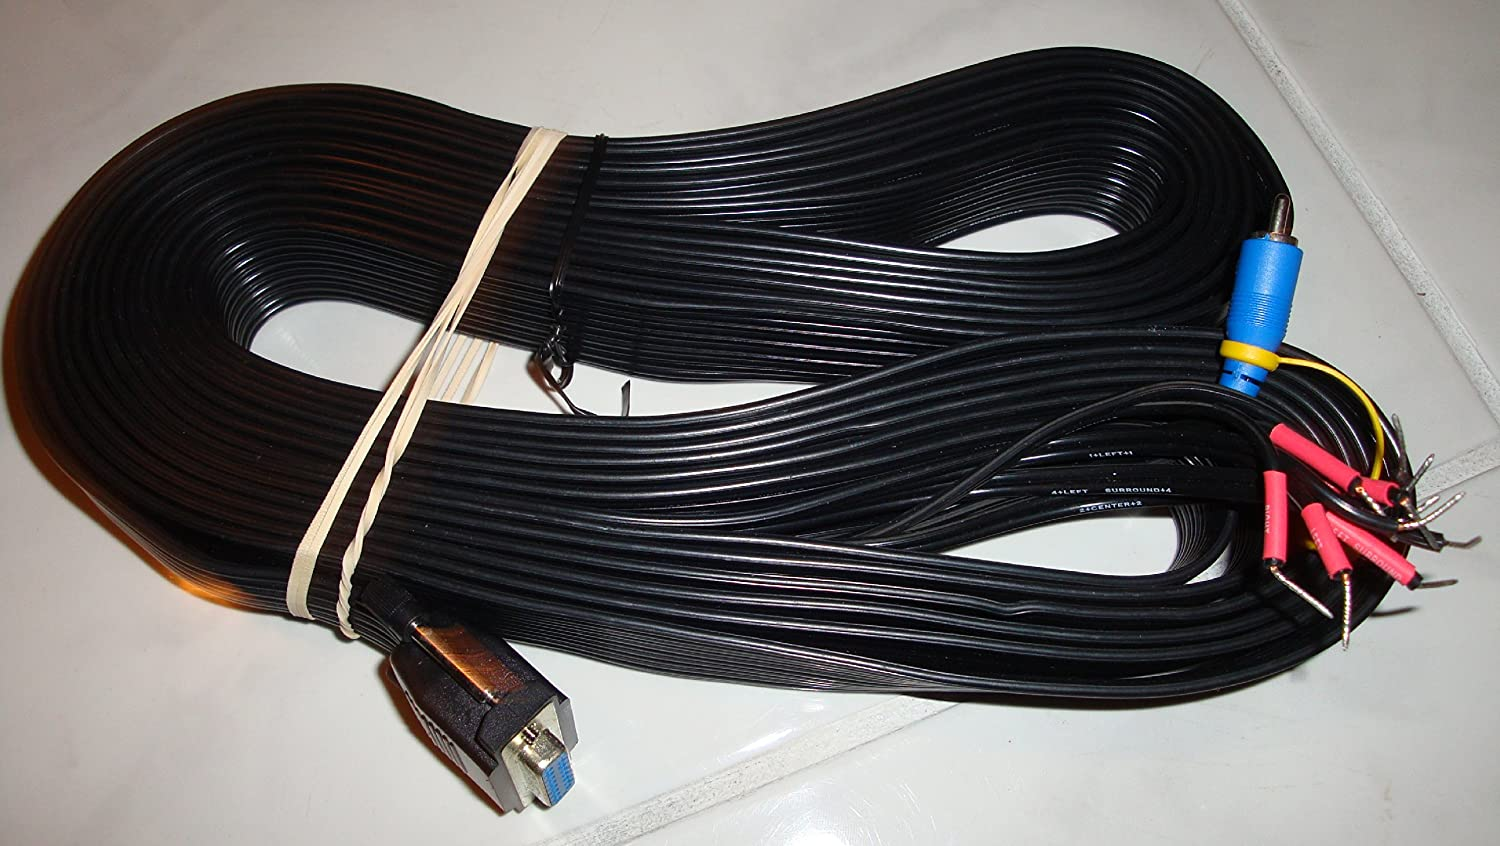 91VP4Uej%2BCL._SL1500_ amazon com bose audio cable 15 pin from subwoofer to receiver  at edmiracle.co